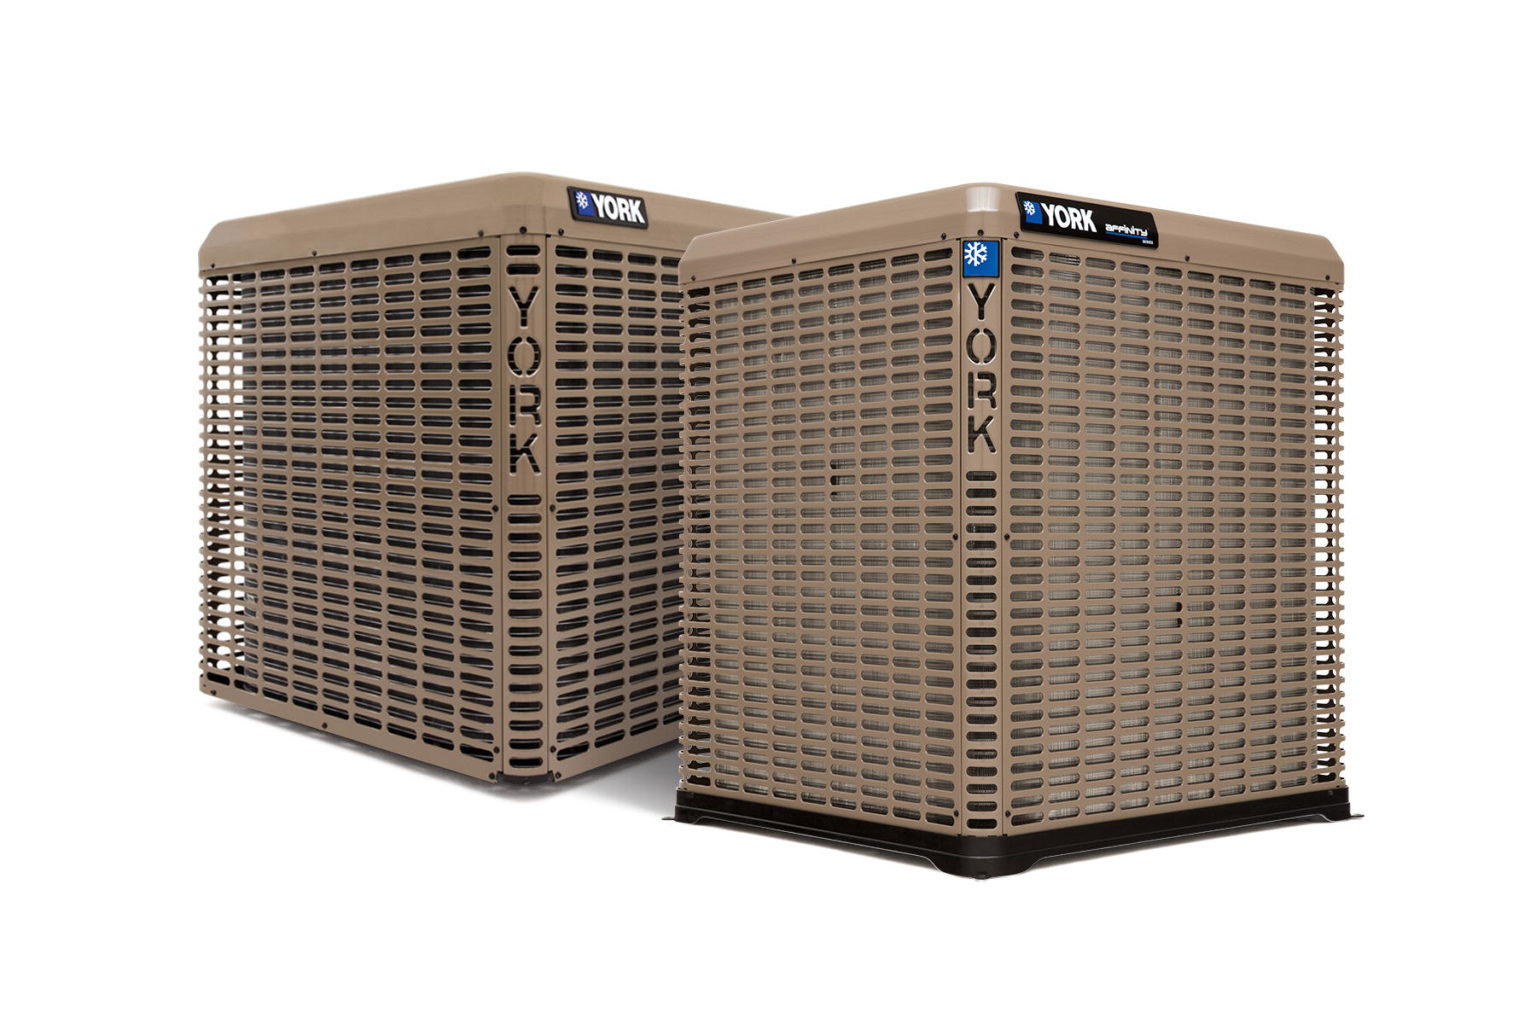 YORK AC units on white background.